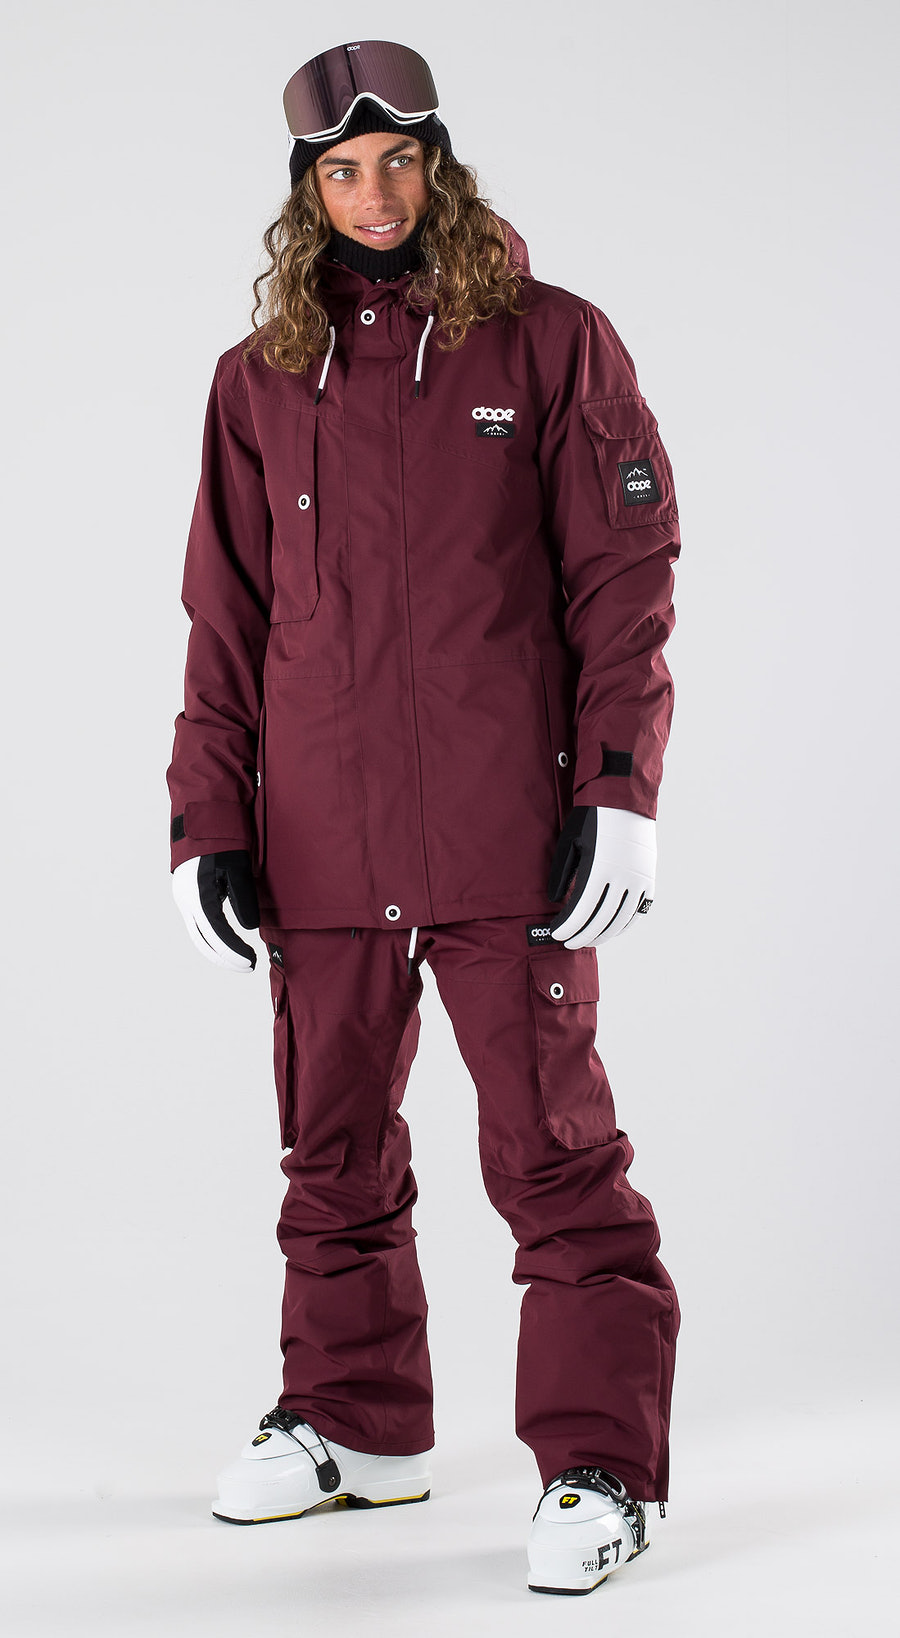 Dope Adept Burgundy Ski clothing Multi